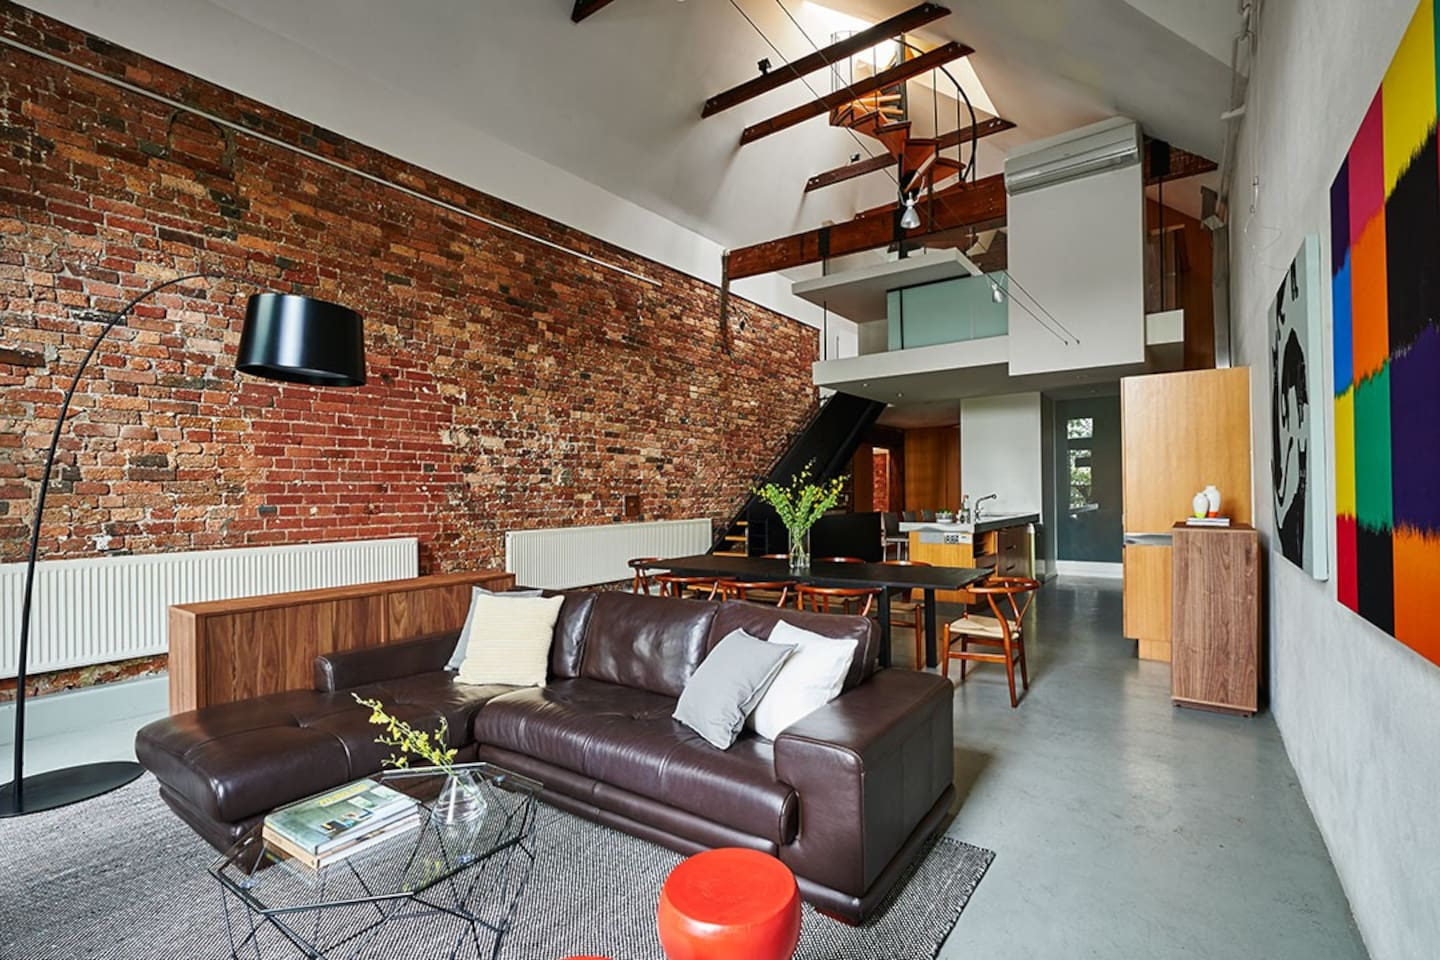 LUXICO - Grand Loft (Fitzroy) - Houses for Rent in Fitzroy